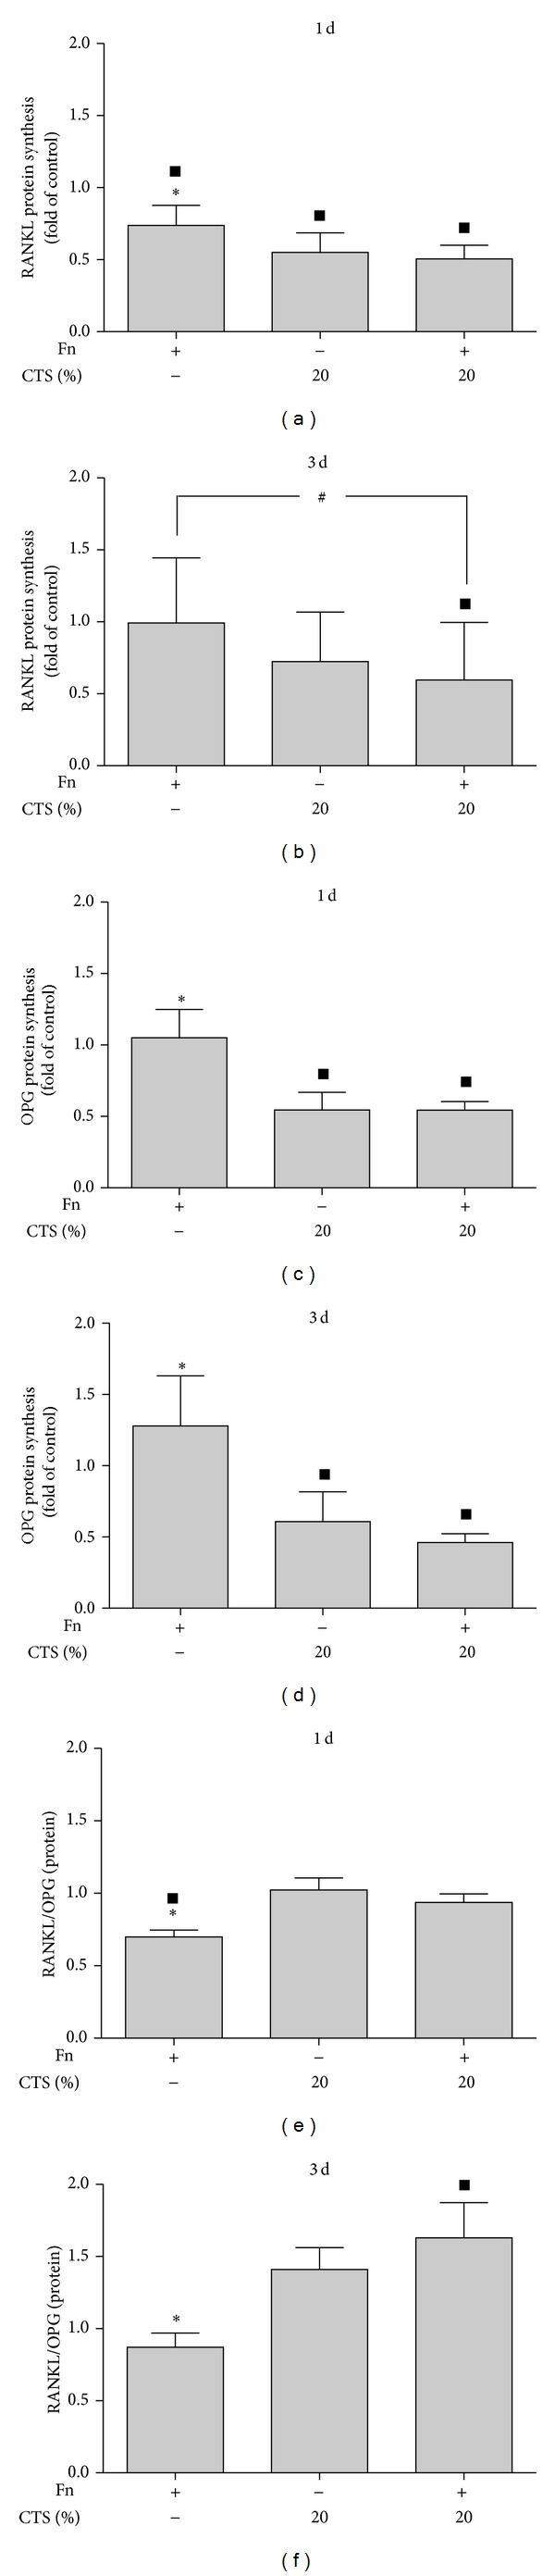 (a and b) Synthesis of RANKL protein in supernatants of PDL cells stimulated by F. nucleatum ATCC 25586 and/or CTSH at 1 day (a) and 3 days (b). (c and d) Synthesis of OPG protein in supernatants of PDL cells stimulated by F. nucleatum ATCC 25586 and/or CTSH at 1 day (c) and 3 days (d). (e and f) RANKL/OPG protein ratio in supernatants of PDL cells stimulated by F. nucleatum ATCC 25586 and/or CTSH at 1 day (e) and 3 days (f). *Significant difference compared to other groups ( P